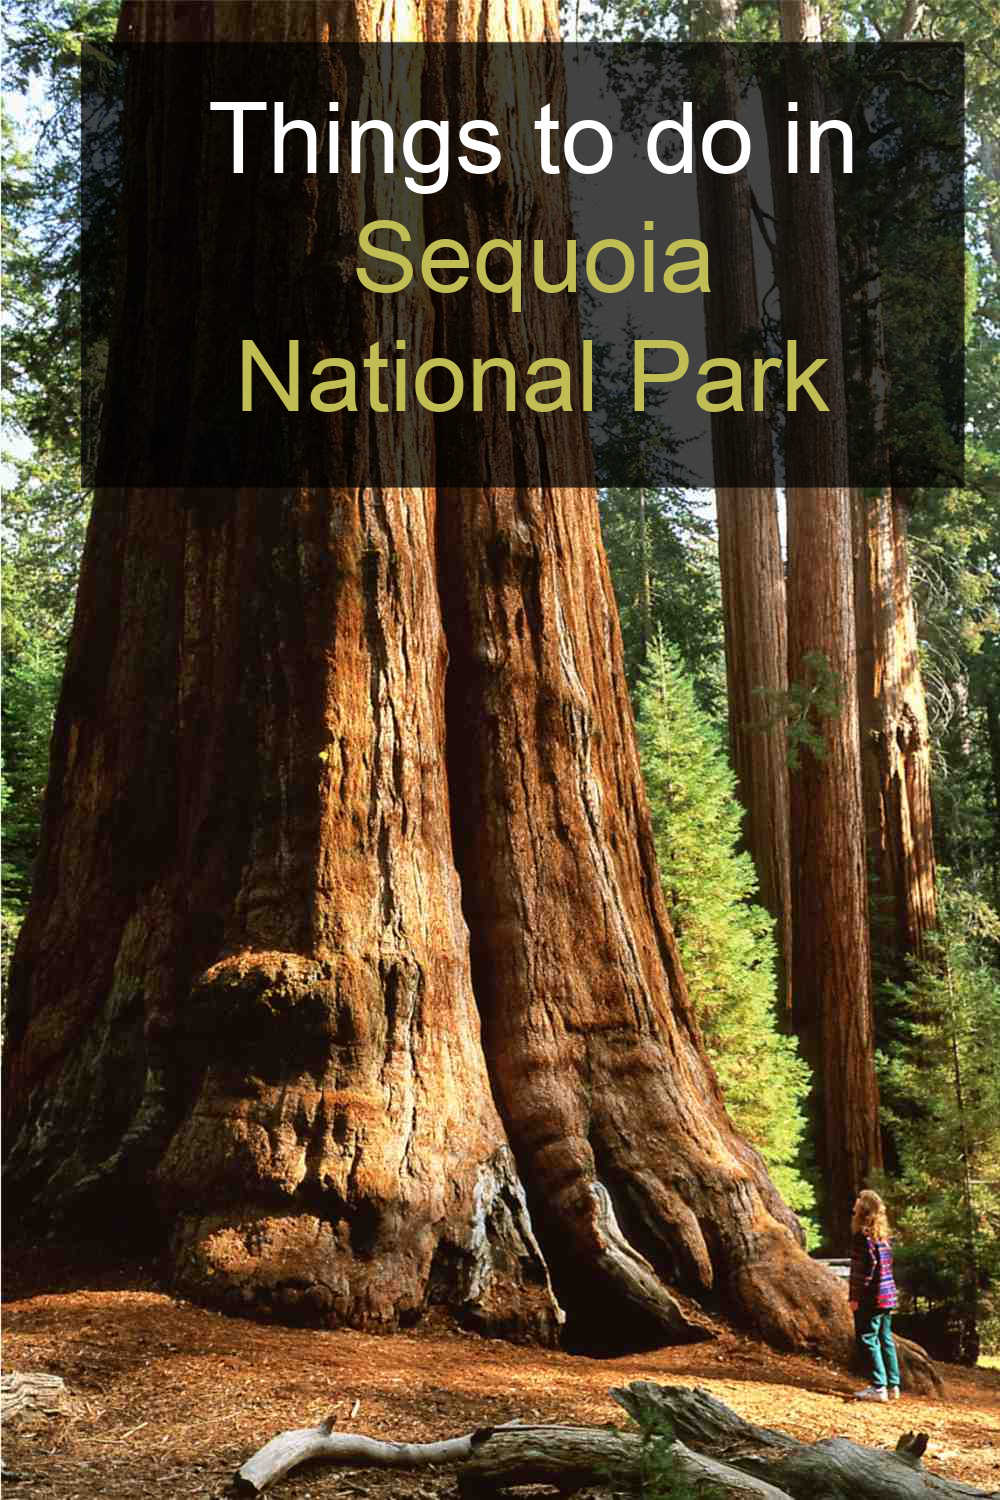 General Sherman Tree and words reading Things to do in Sequoia National Park.